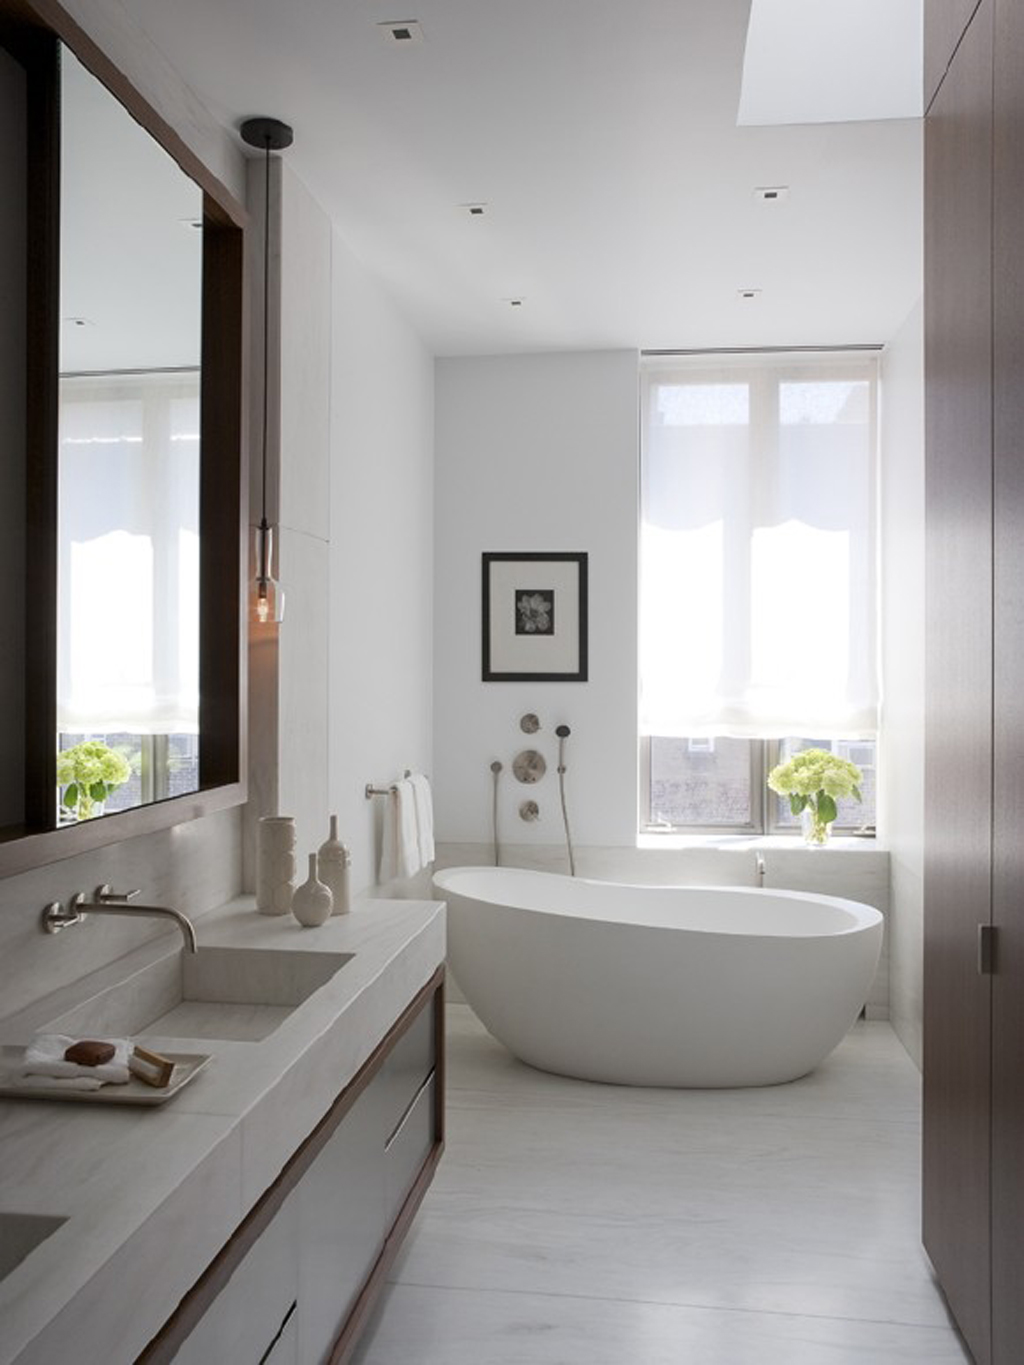 25 great ideas and pictures of traditional bathroom wall tiles 1 dailygadgetfo Choice Image